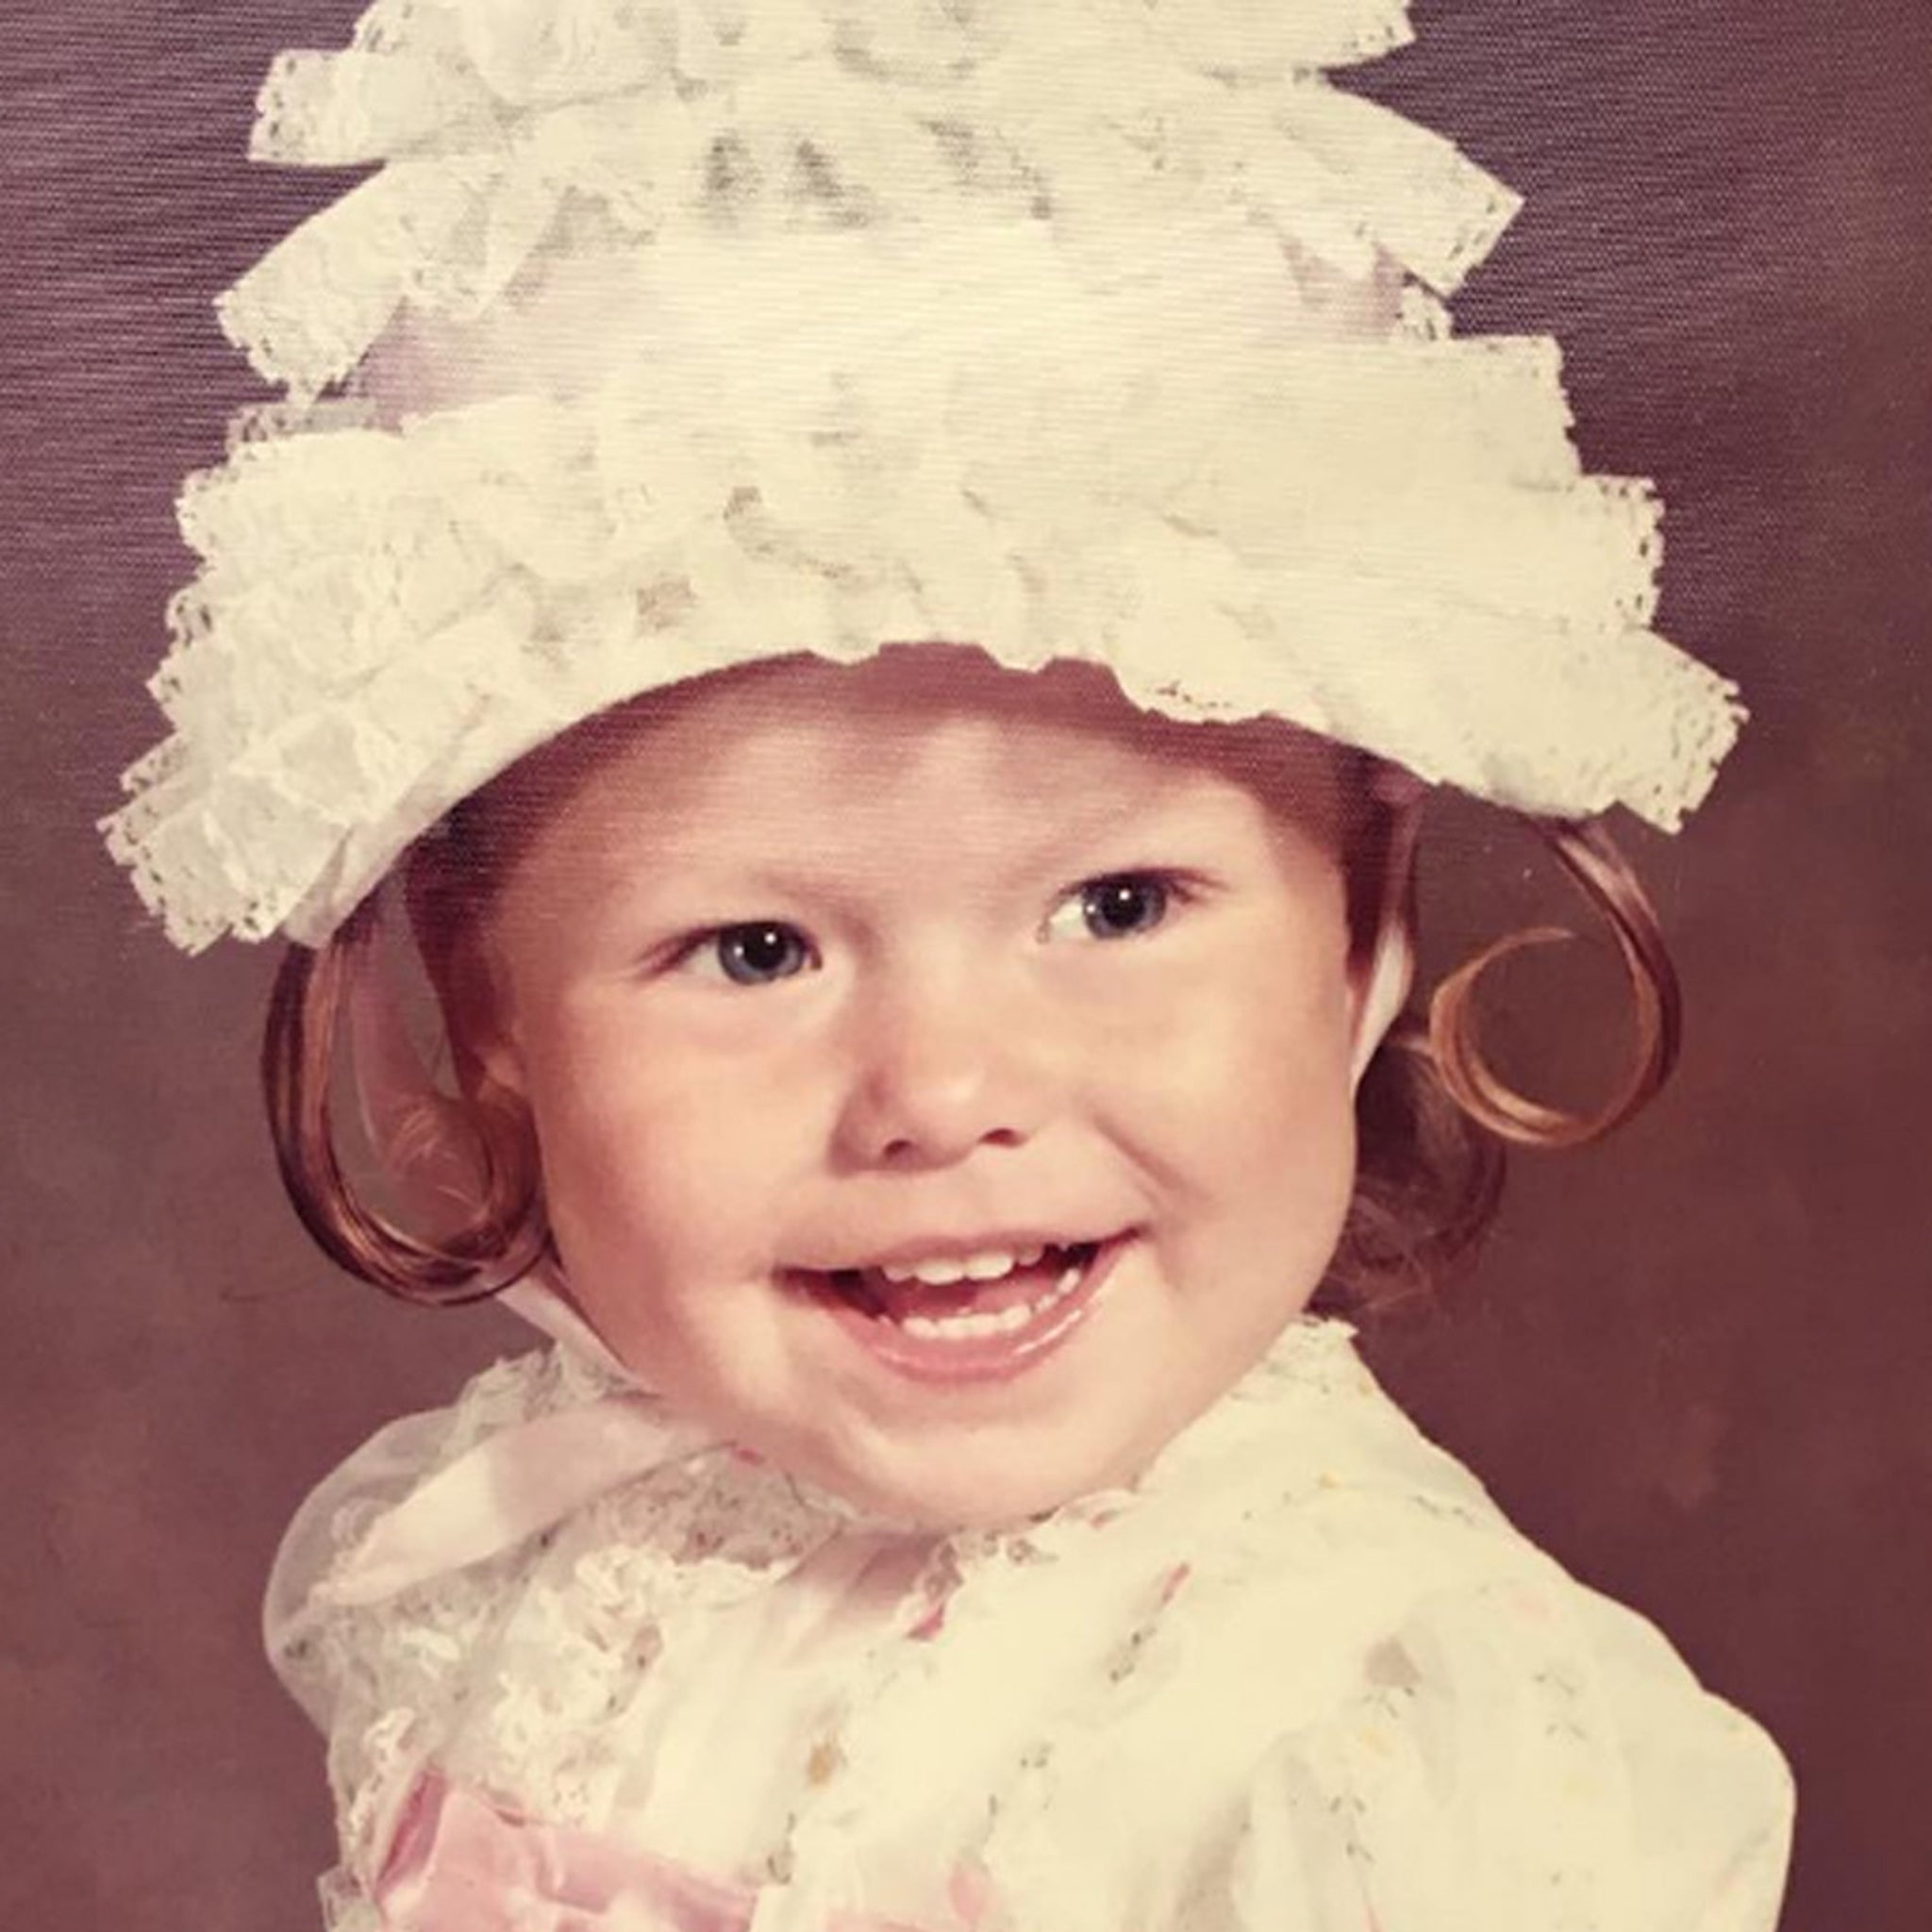 Guess Who This Curlicue Cutie Turned Into!